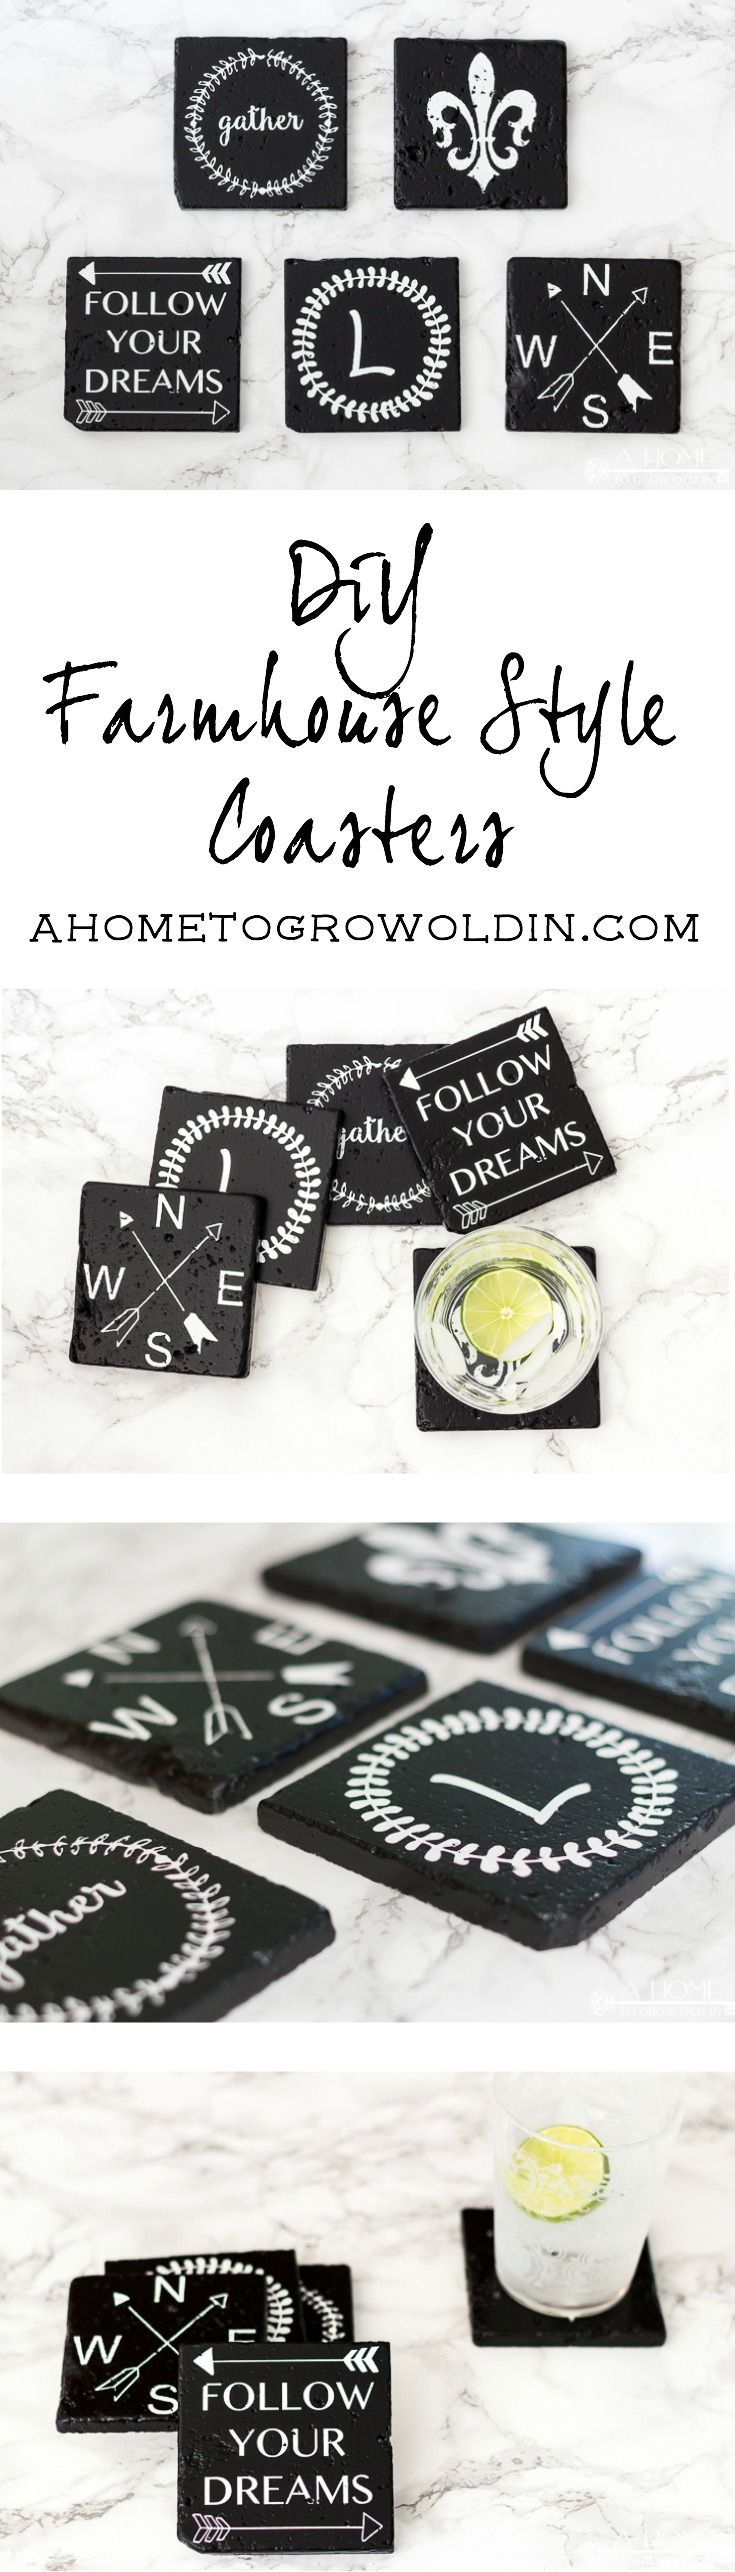 Check out these farmhouse style coasters!  It's such an easy DIY using inexpensive stone tile.  Includes 5 free Silhouette cut files!  Make sure to save it for later! via @ahome2growoldin